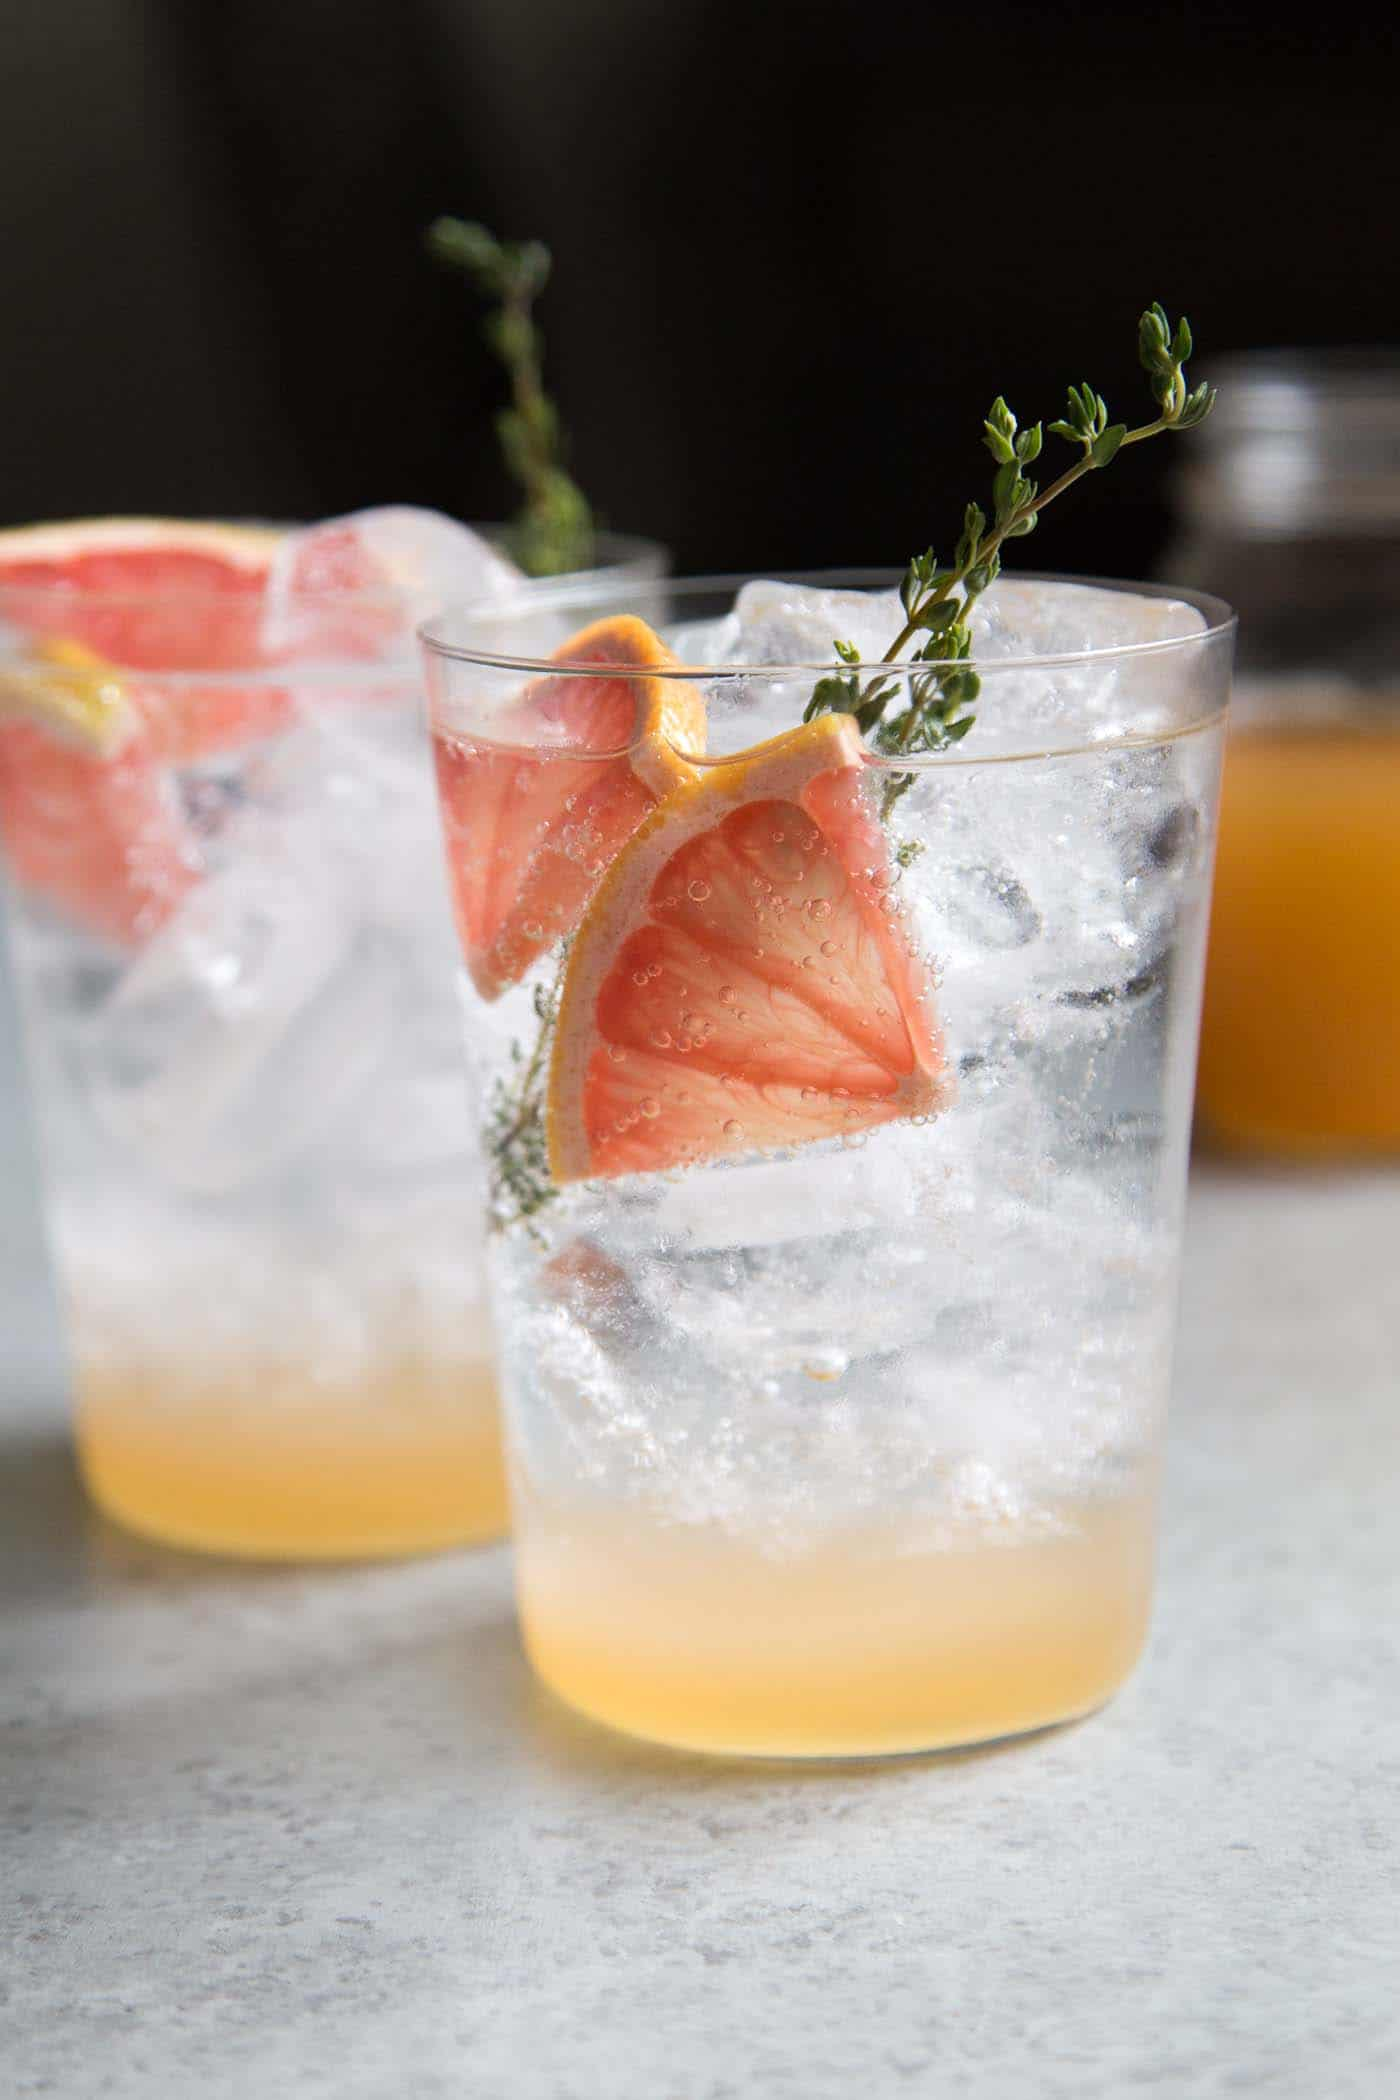 Grapefruit Shrub Mocktail from The Little Epicurean